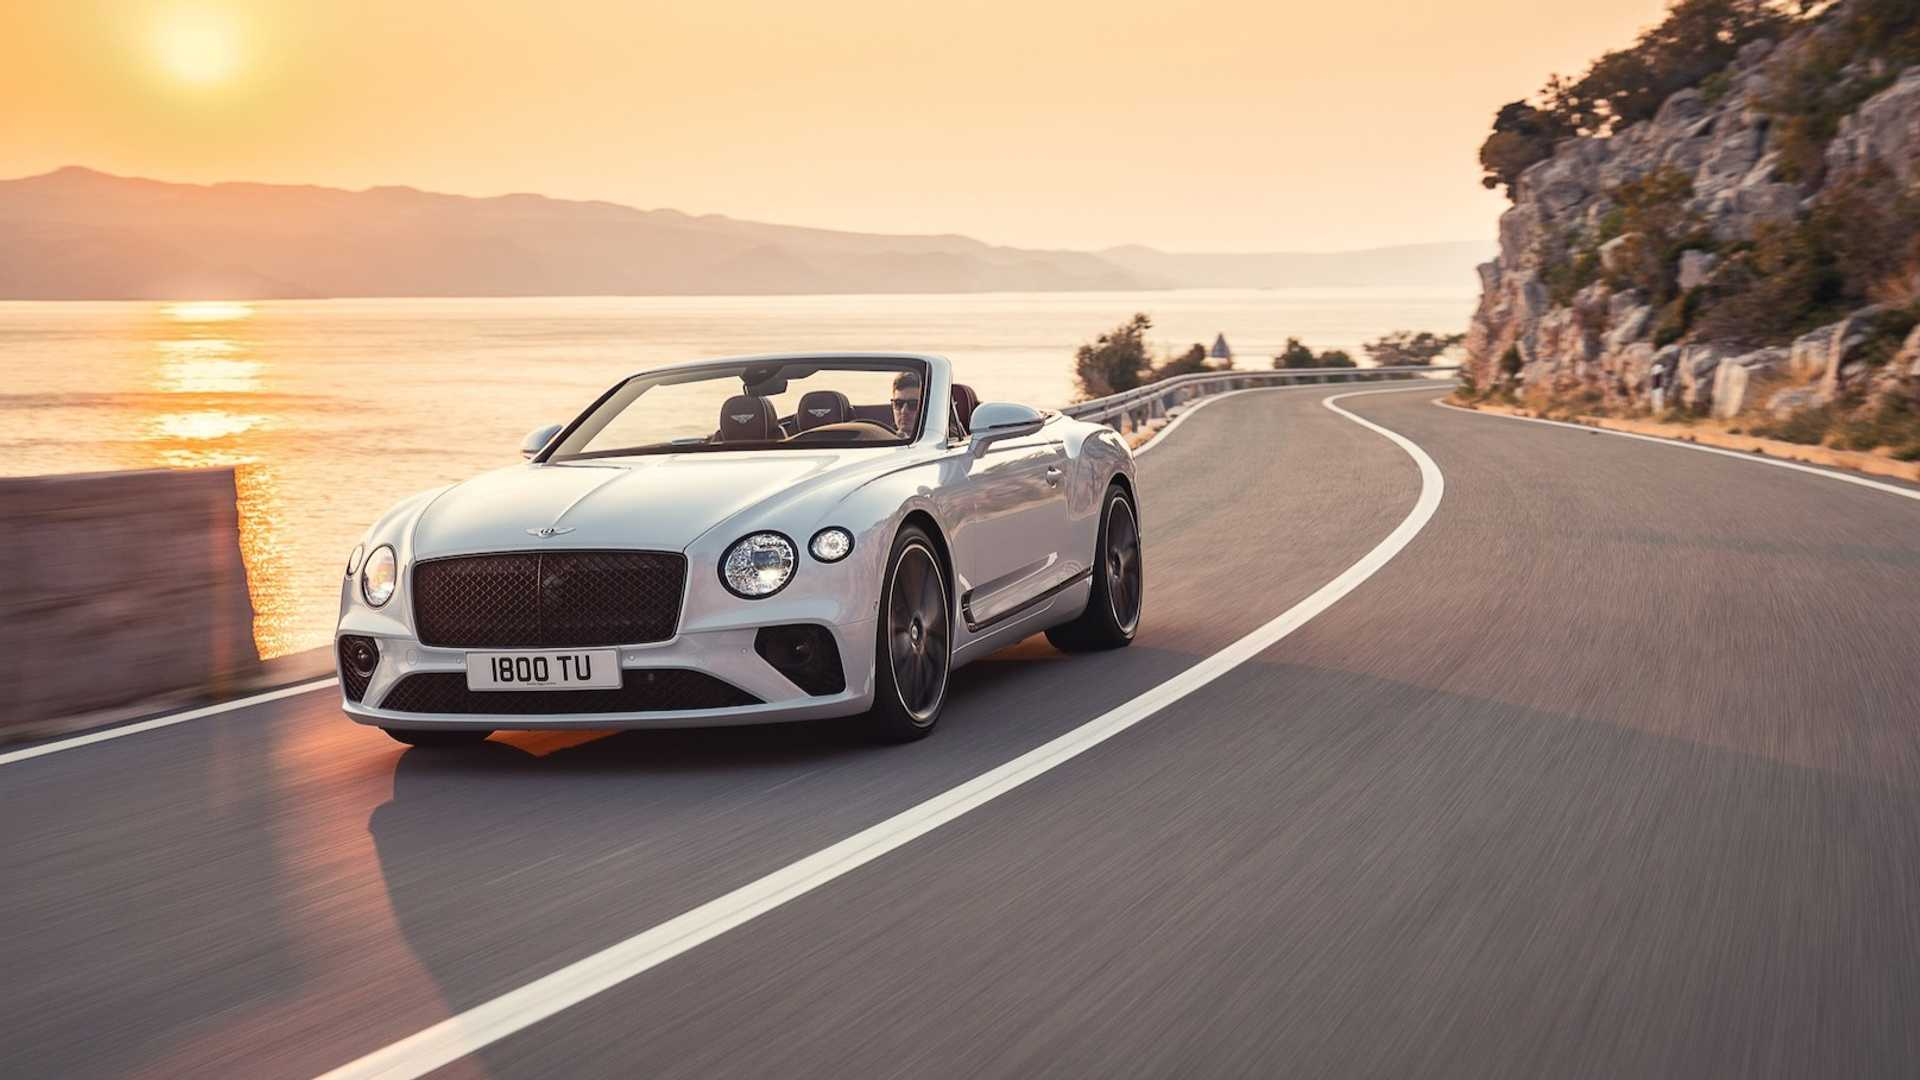 2019-bentley-continental-gt-convertible-unveiled-207-mph-luxury-droptop